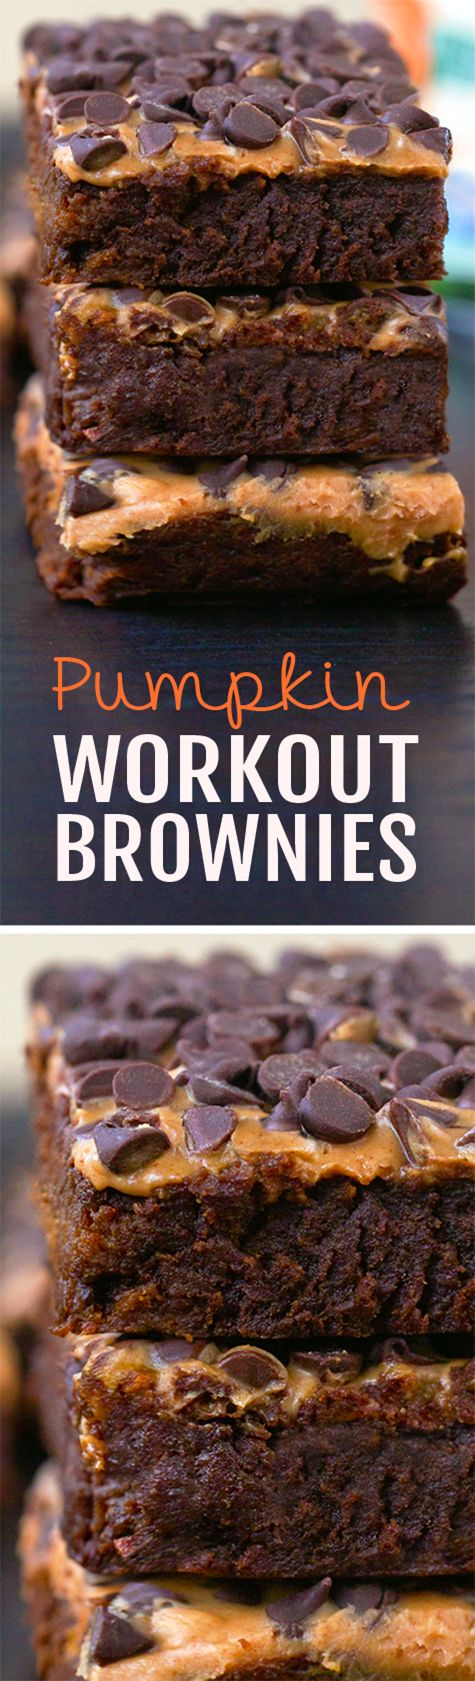 Ultra fudgy pumpkin #recipe #brownies, without all the extra fat and calories, these healthy pumpkin brownies are amazing!